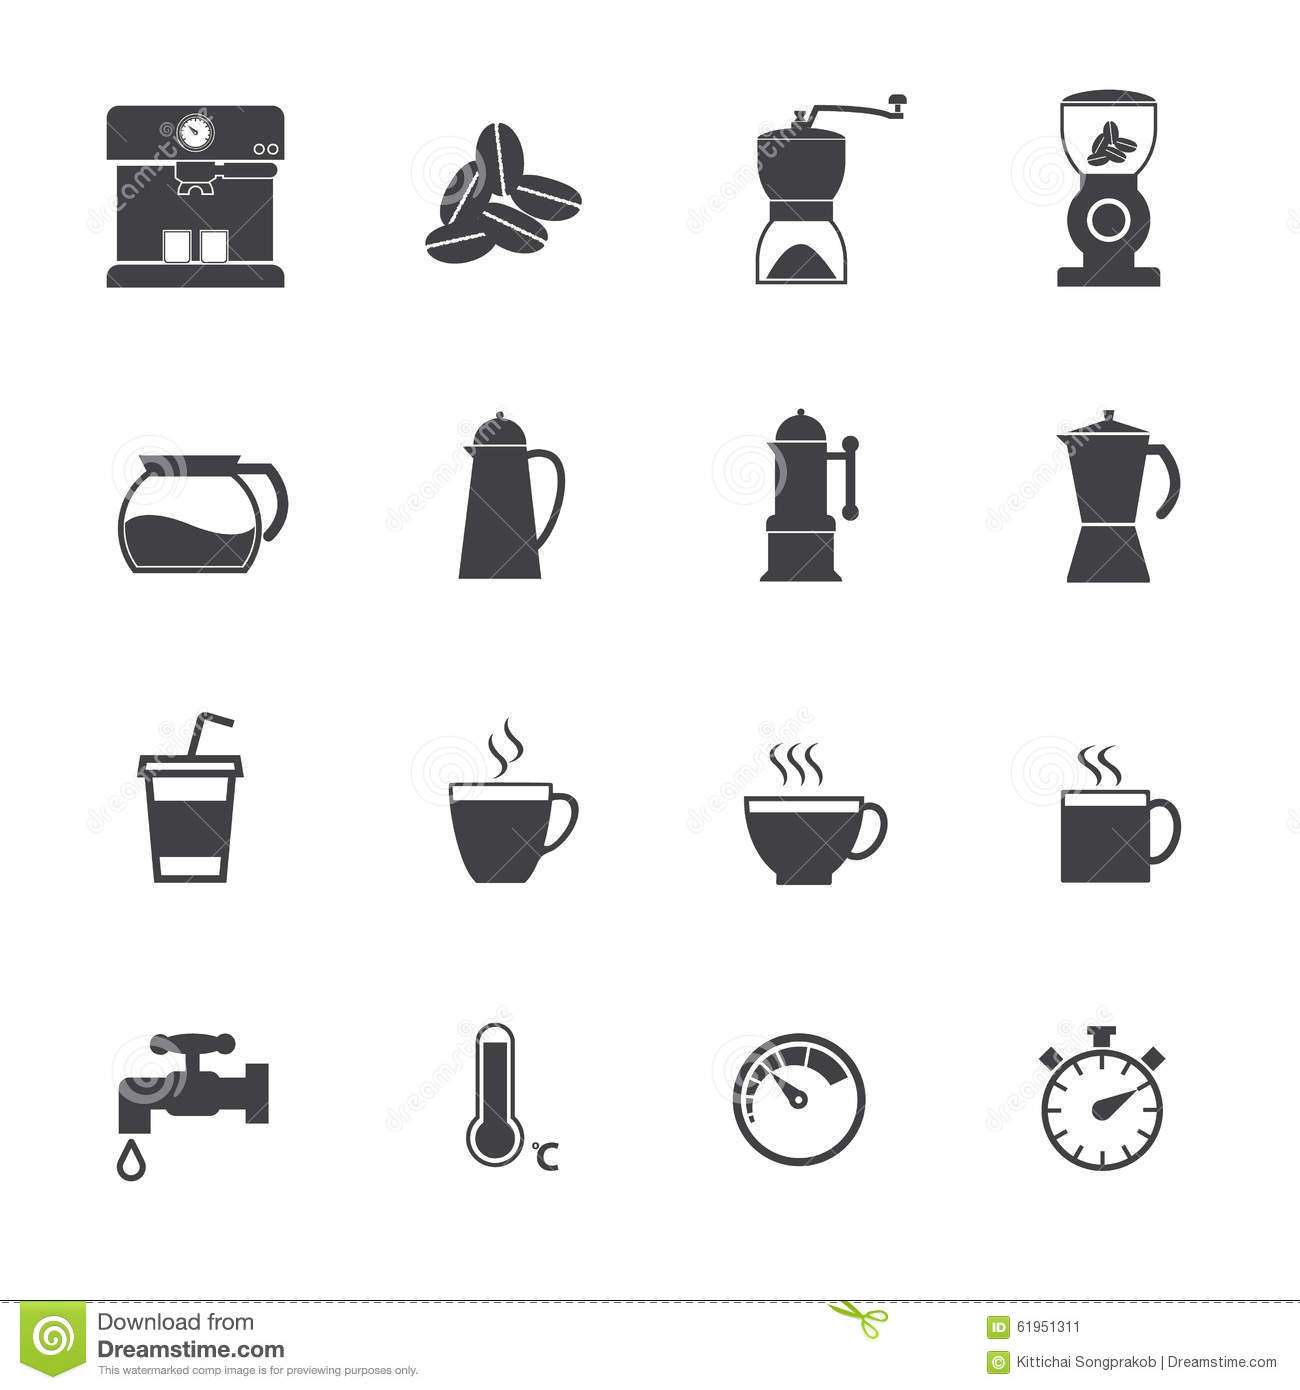 Coffee Maker Icons Set. Vector Flat Design Stock Vector - Image: 61951311